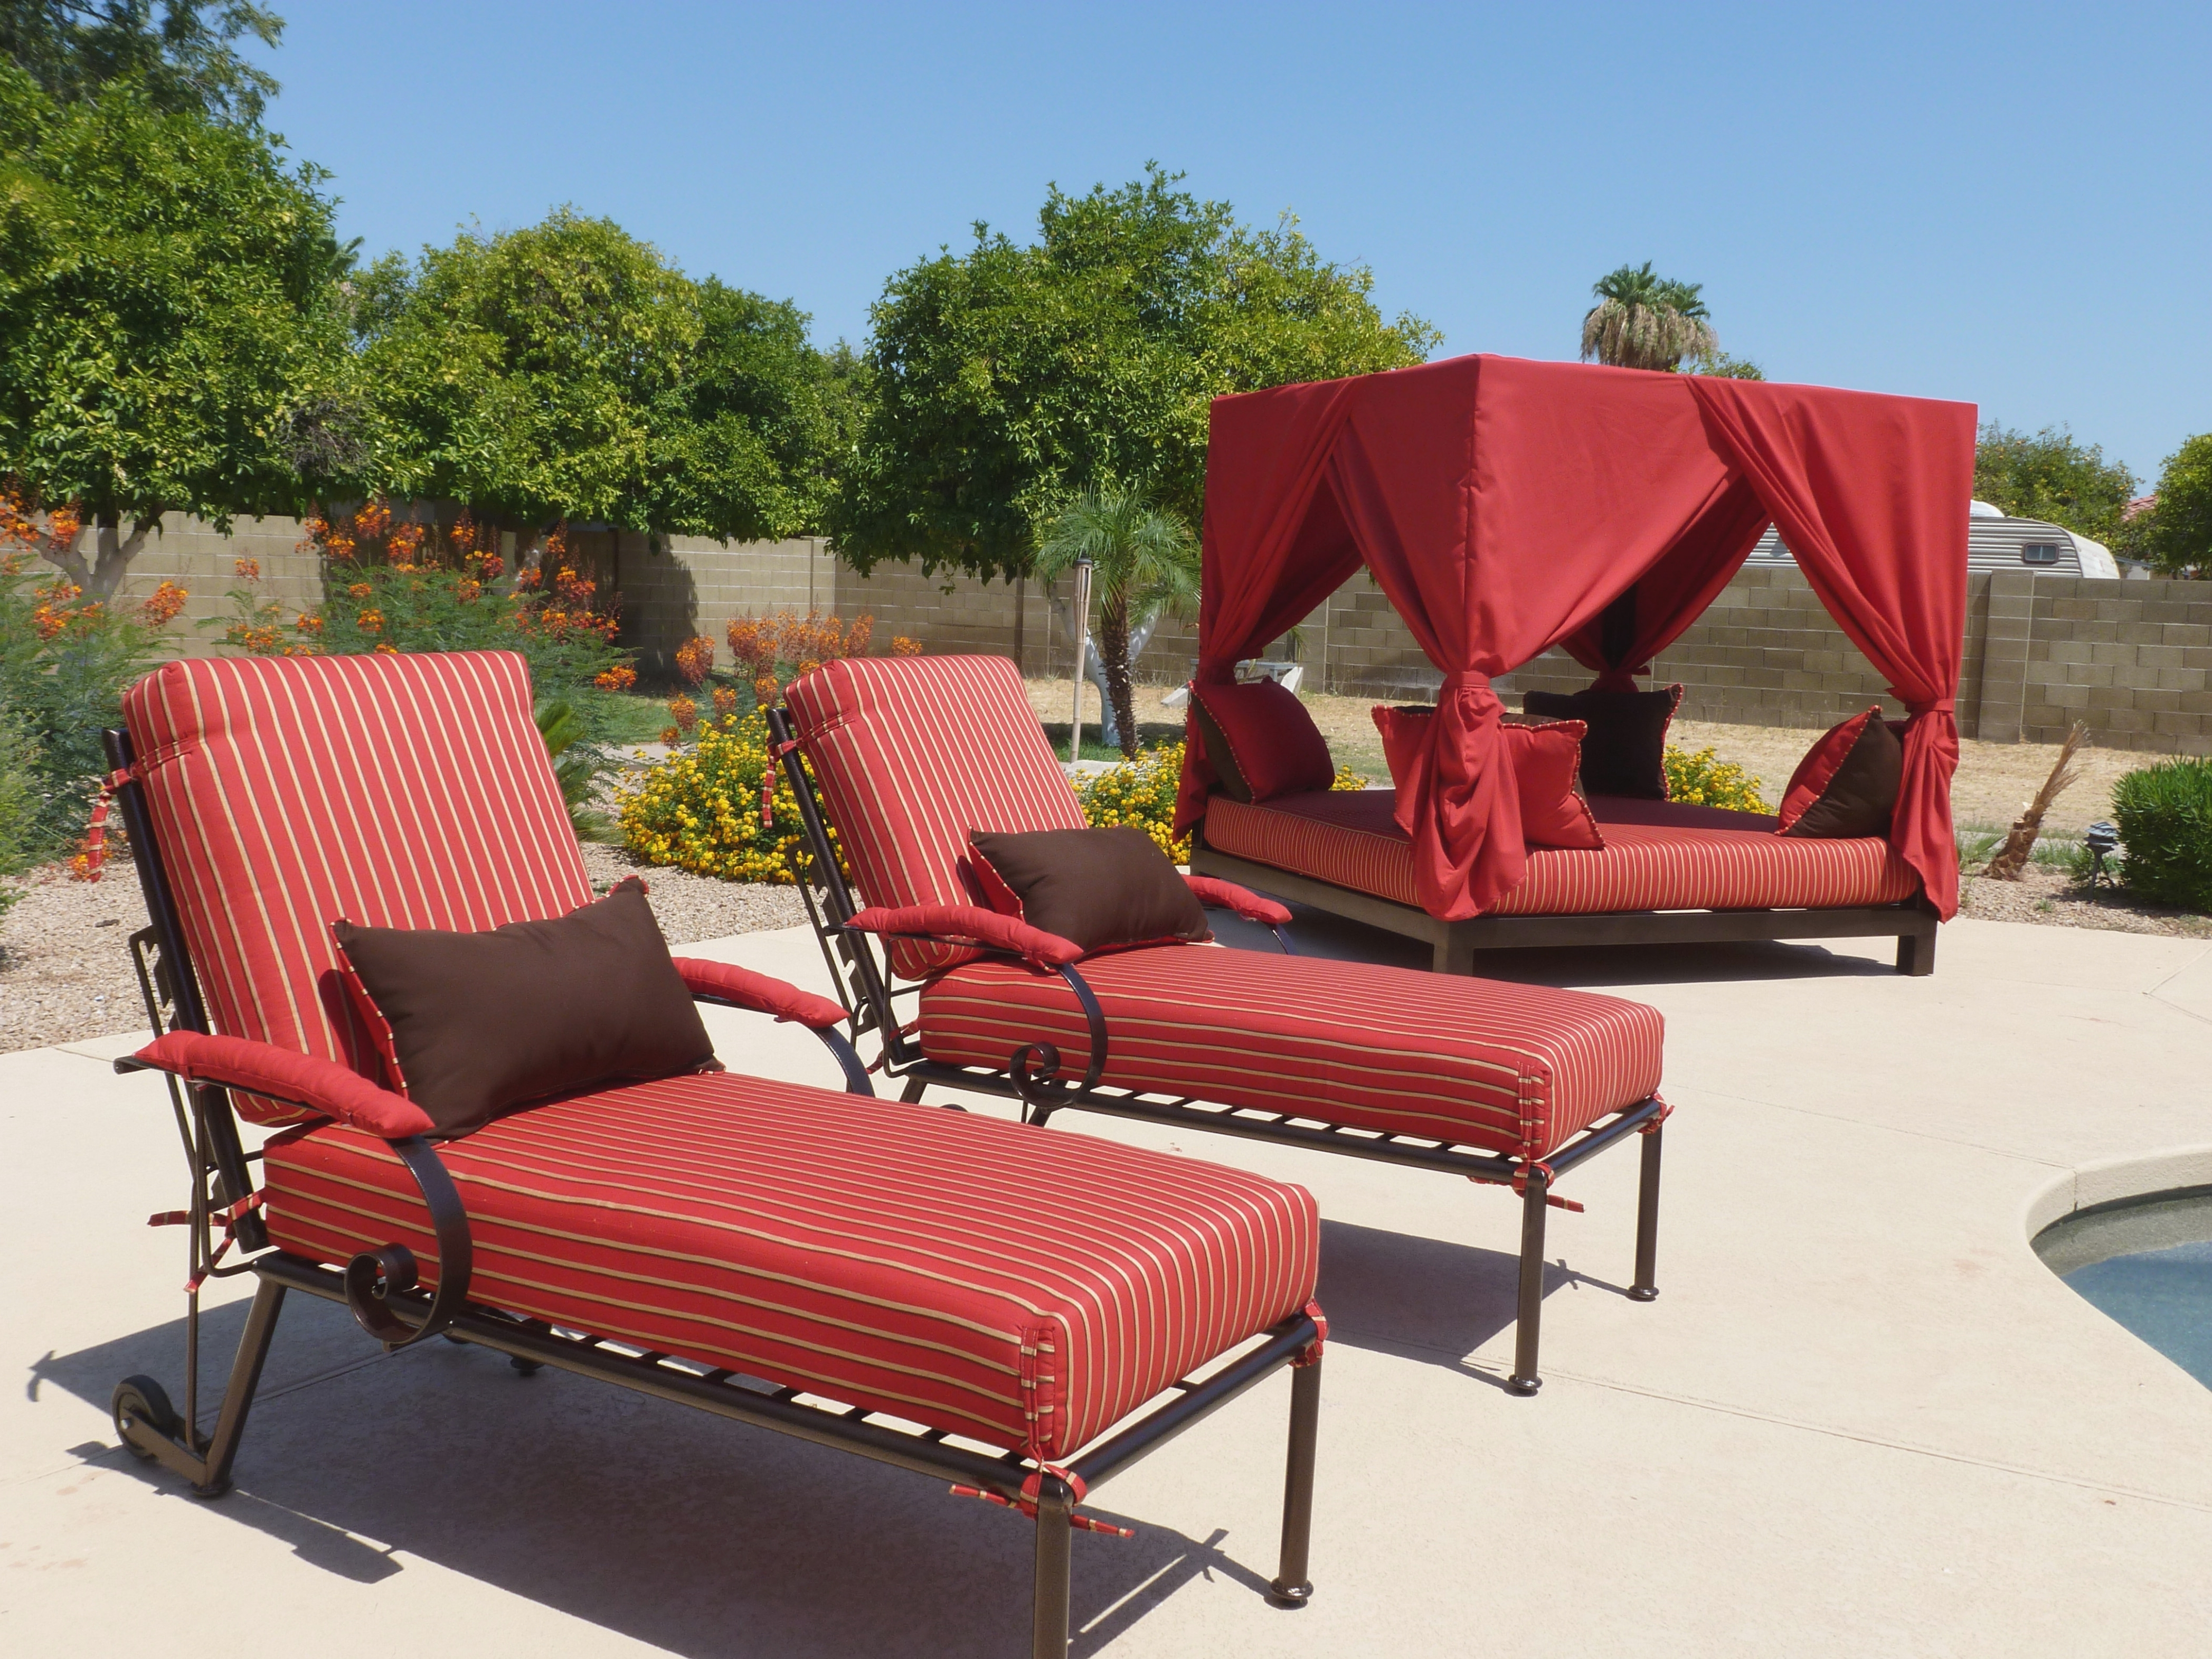 Coolest Todays Patio Furniture Scottsdale F45X On Creative Small Pertaining To Widely Used Upscale Patio Umbrellas (View 4 of 20)